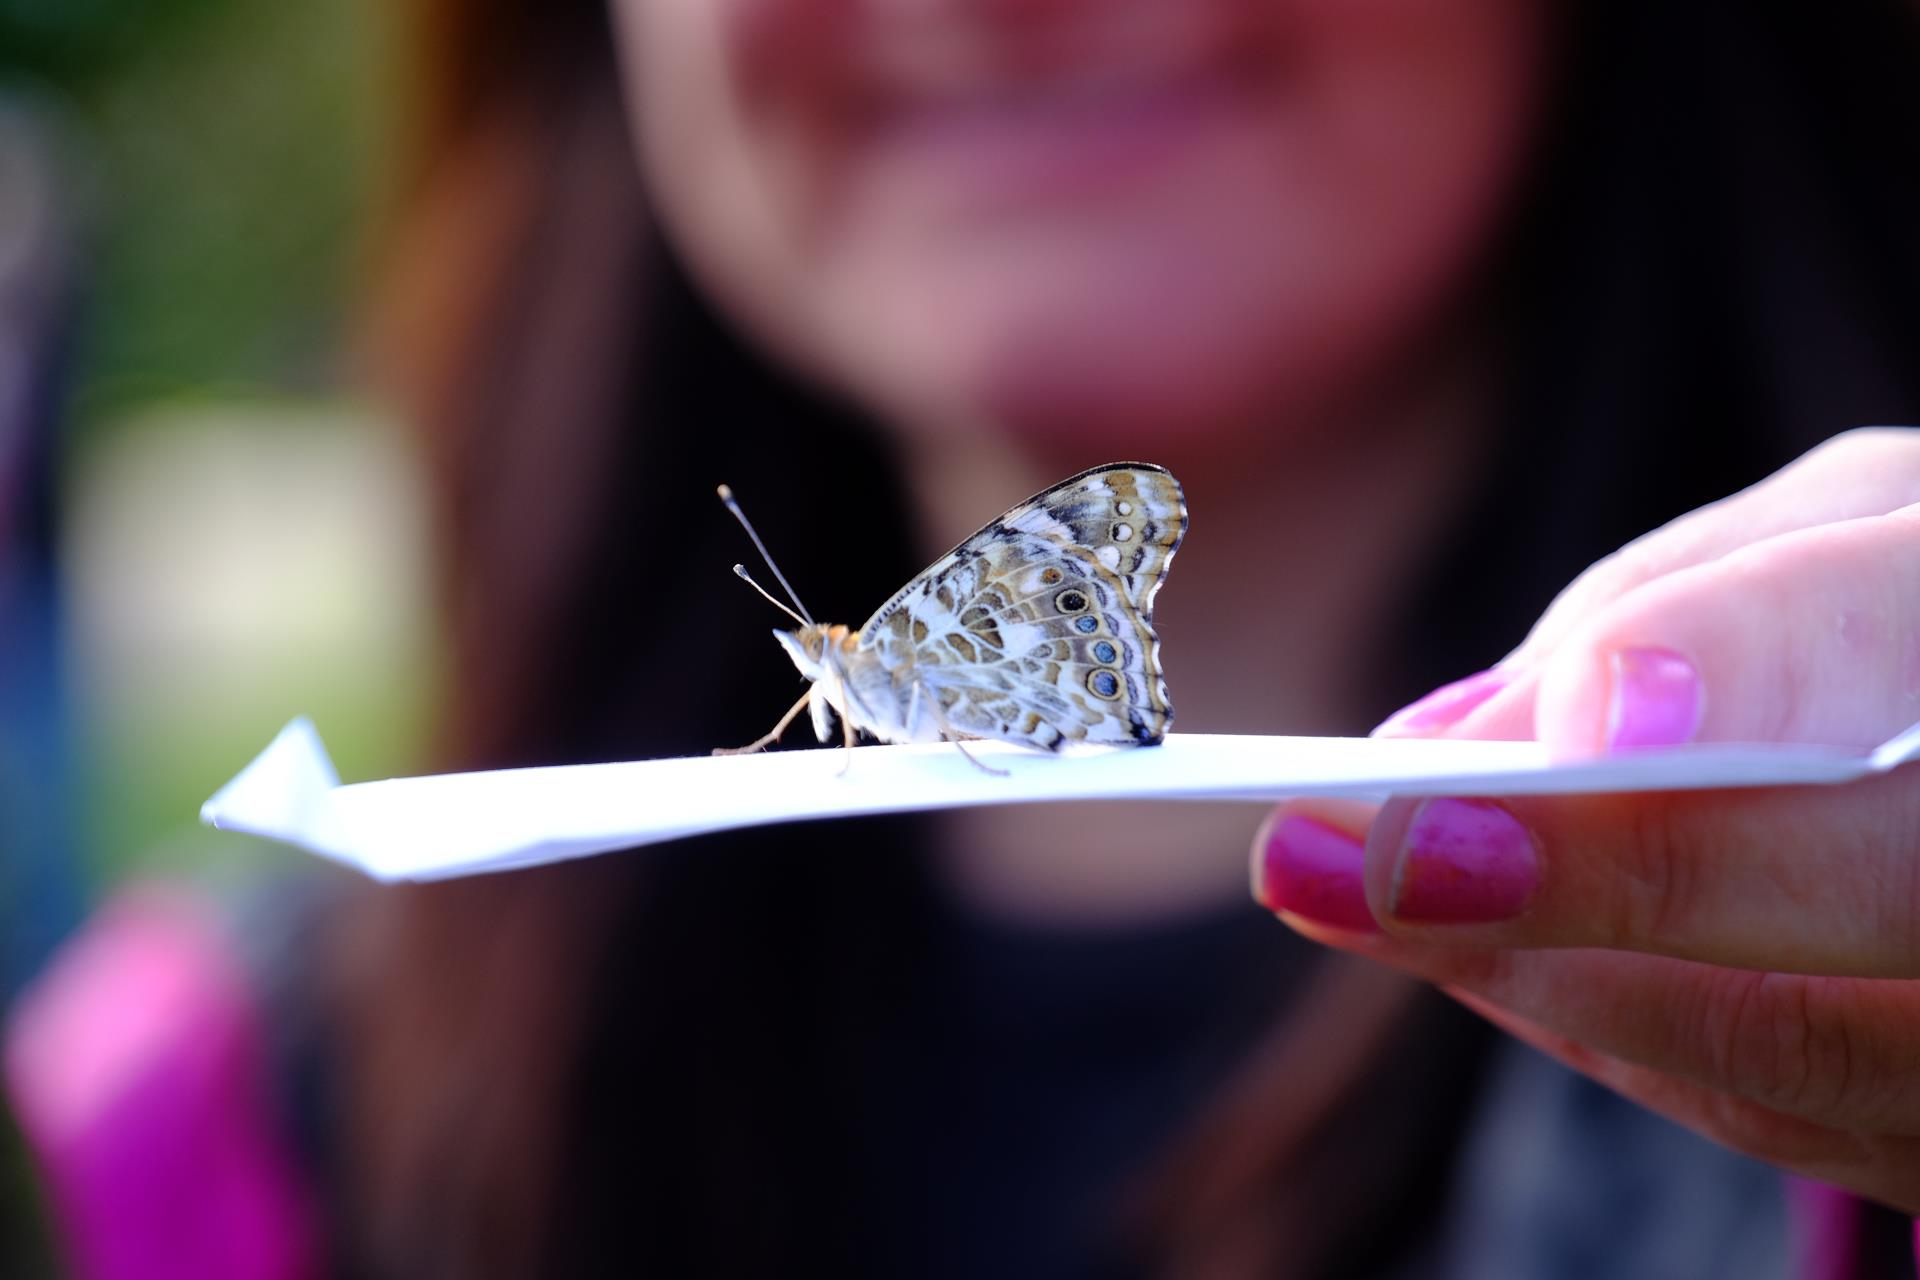 Photo of a butterfly on a hand